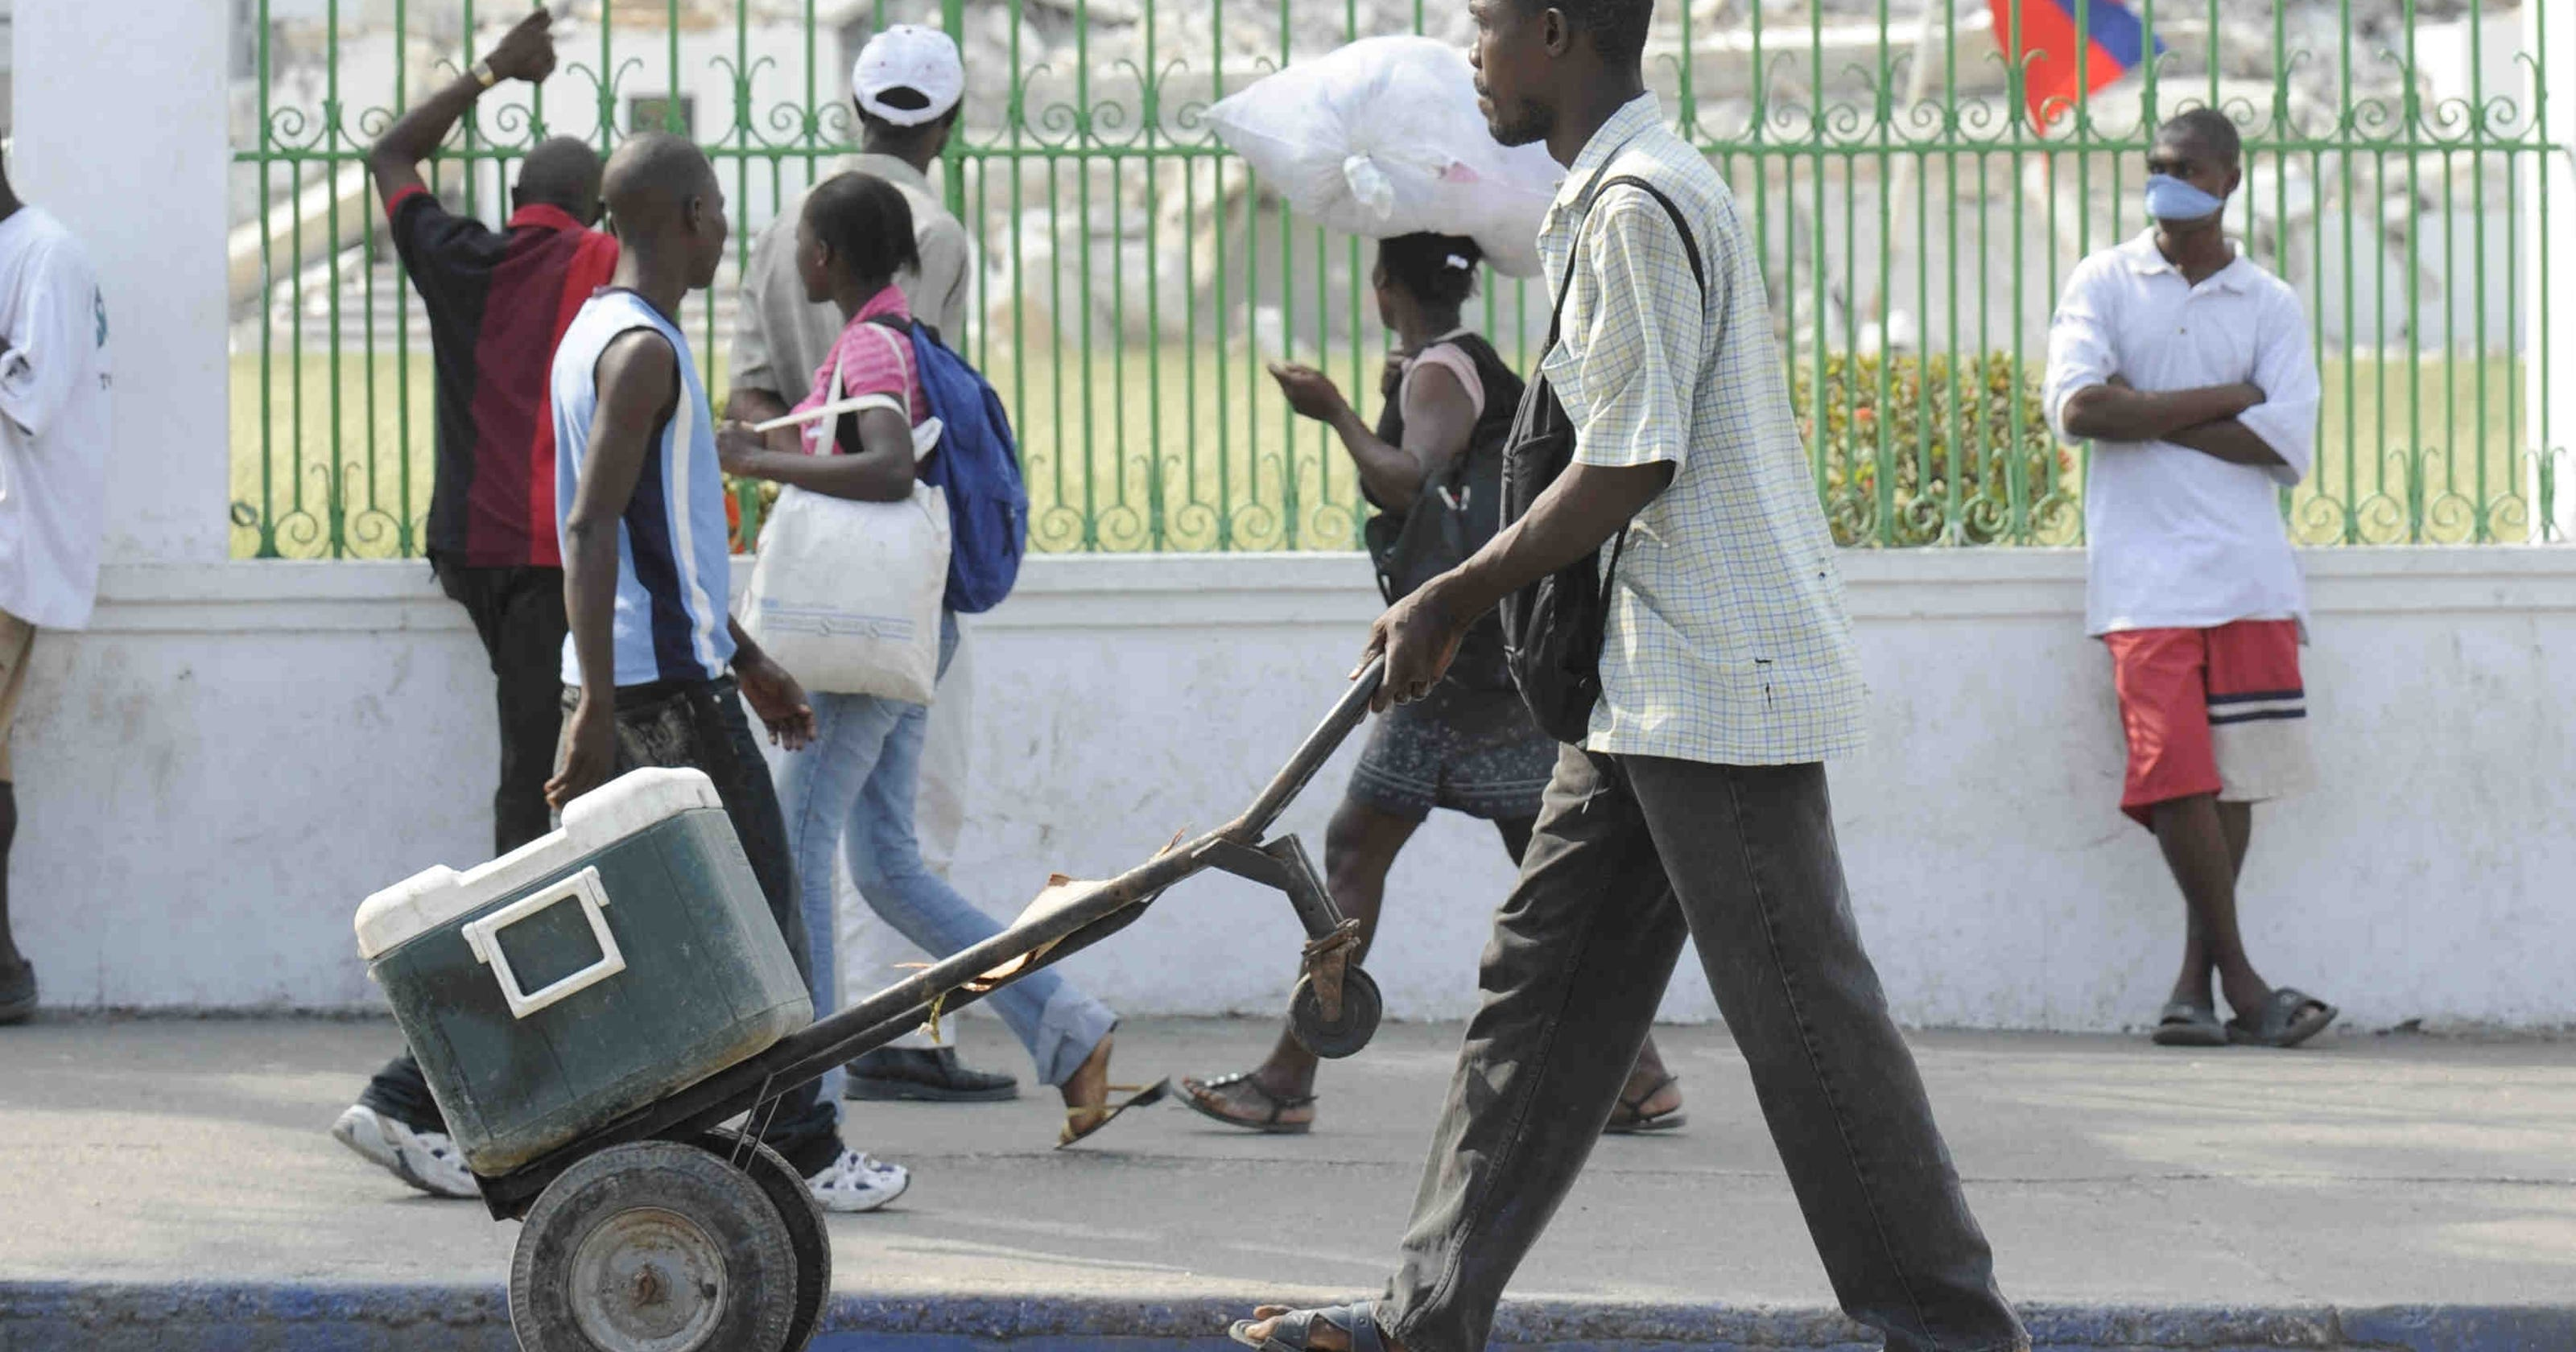 State Dept Issues Revised Haiti Travel Warning